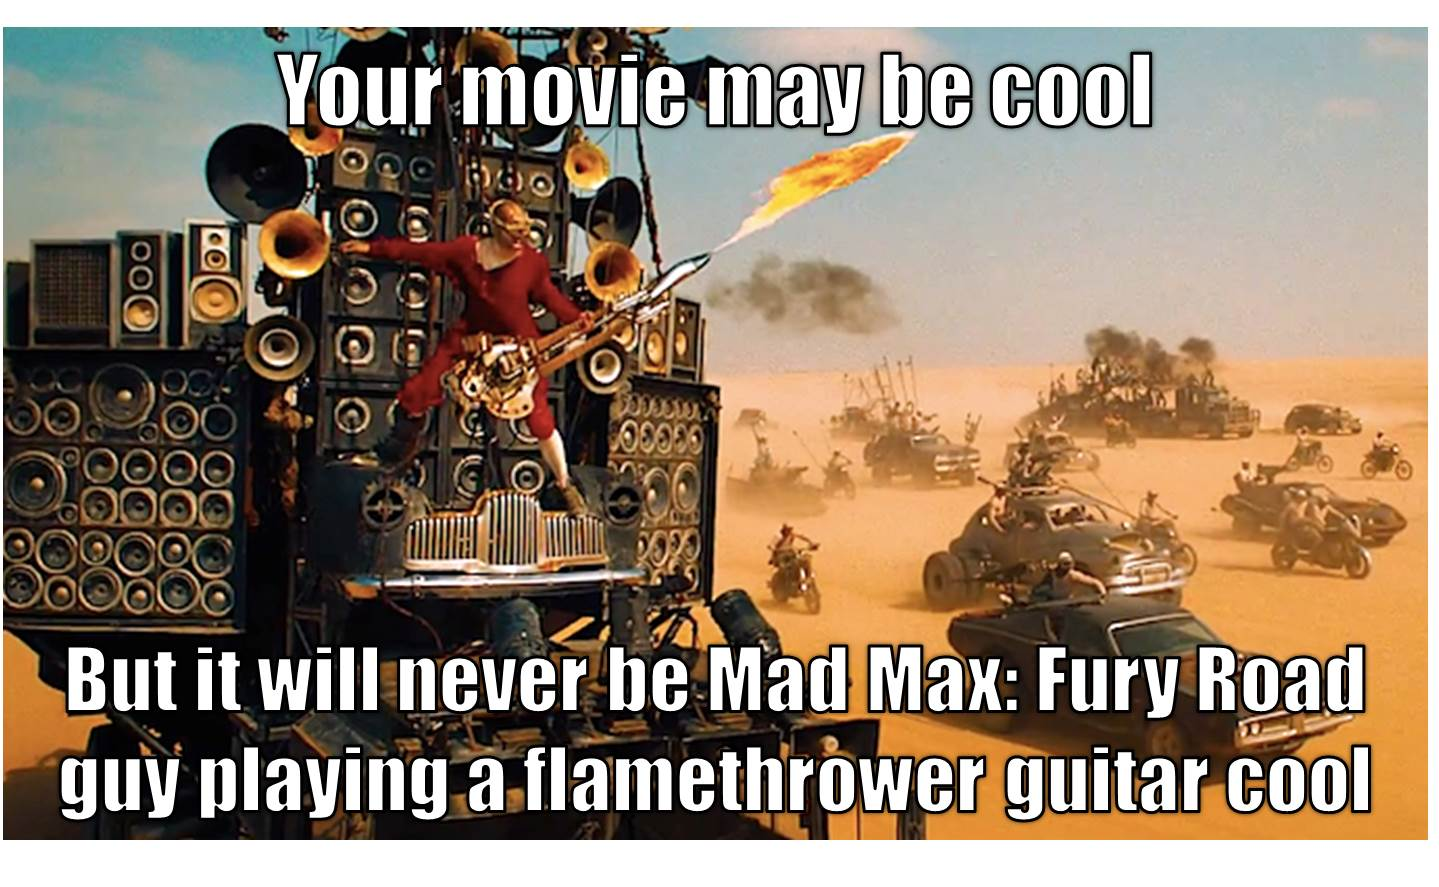 http://media.bigshinyrobot.com/uploads/2015/05/mad_max_fury_road_guy_playing_guitar_cool_meme.jpg